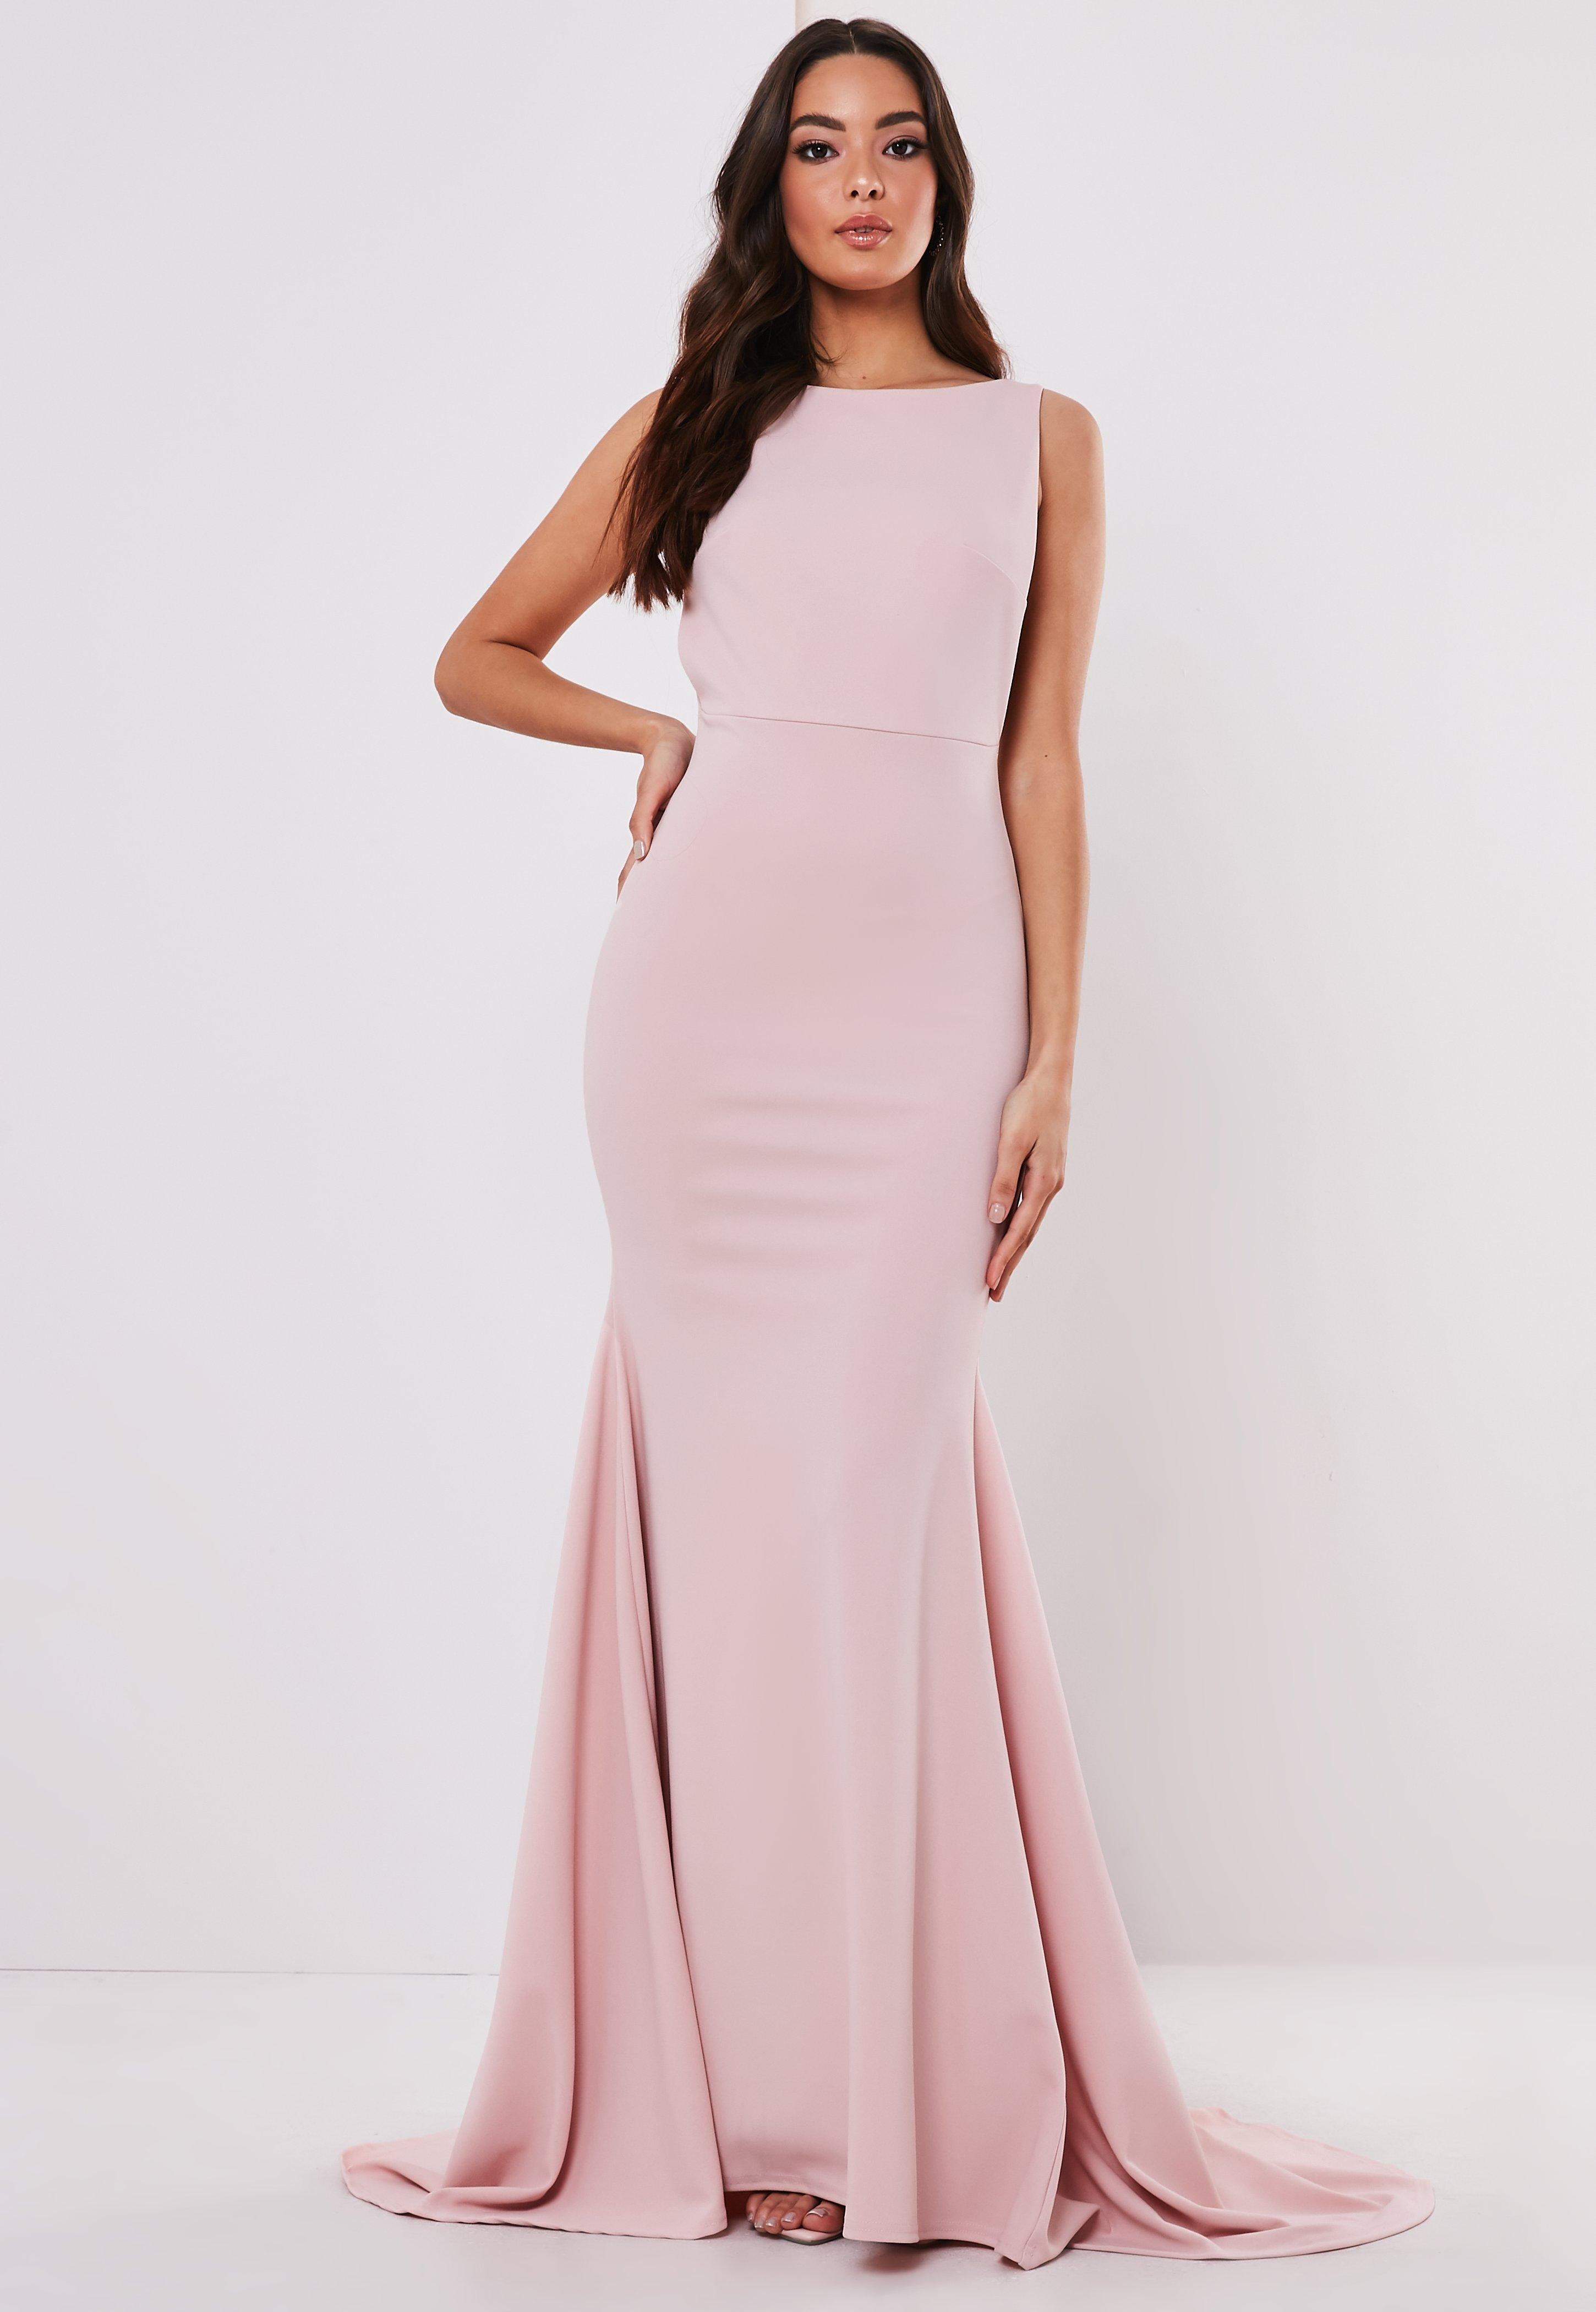 73c1ad7152 Tall Clothing & Womens Tall Clothes Online - Missguided